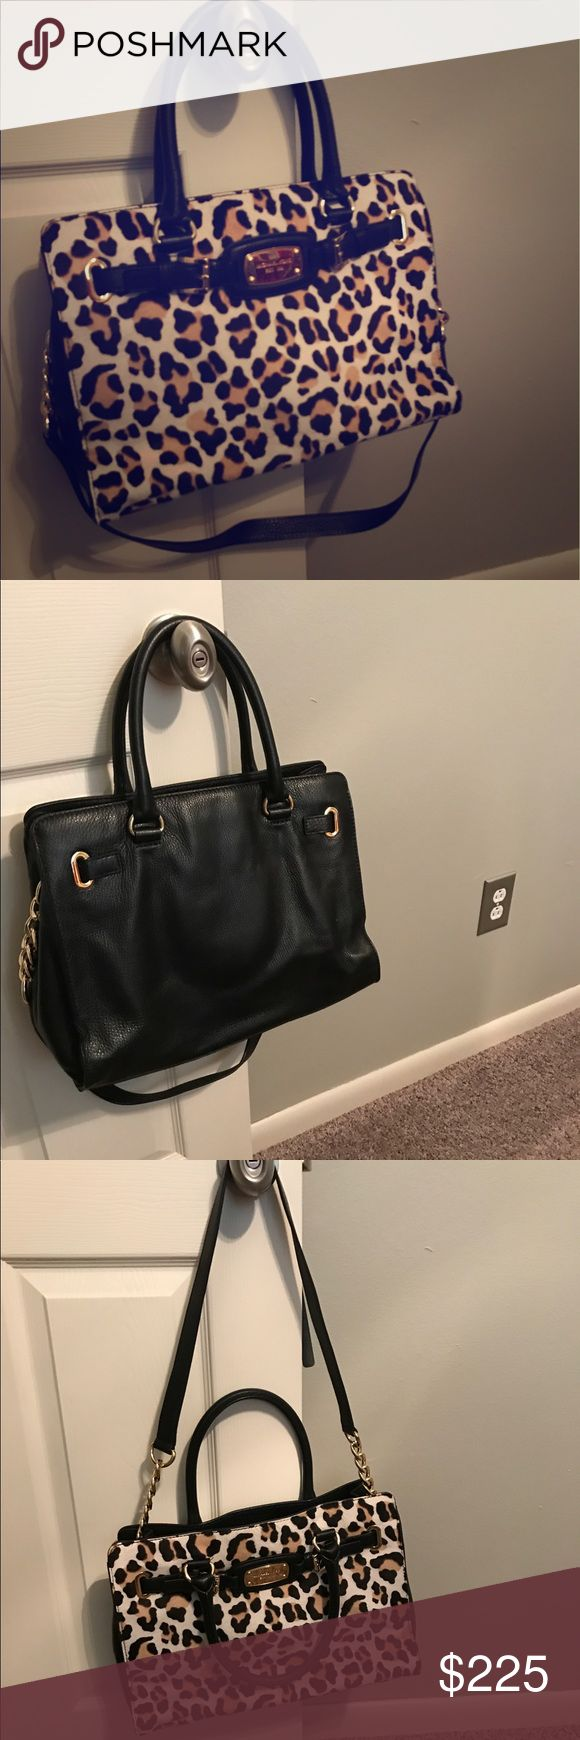 Michael Kors Satchel Great condition, and stored in dust bag! Michael Kors Bags Satchels